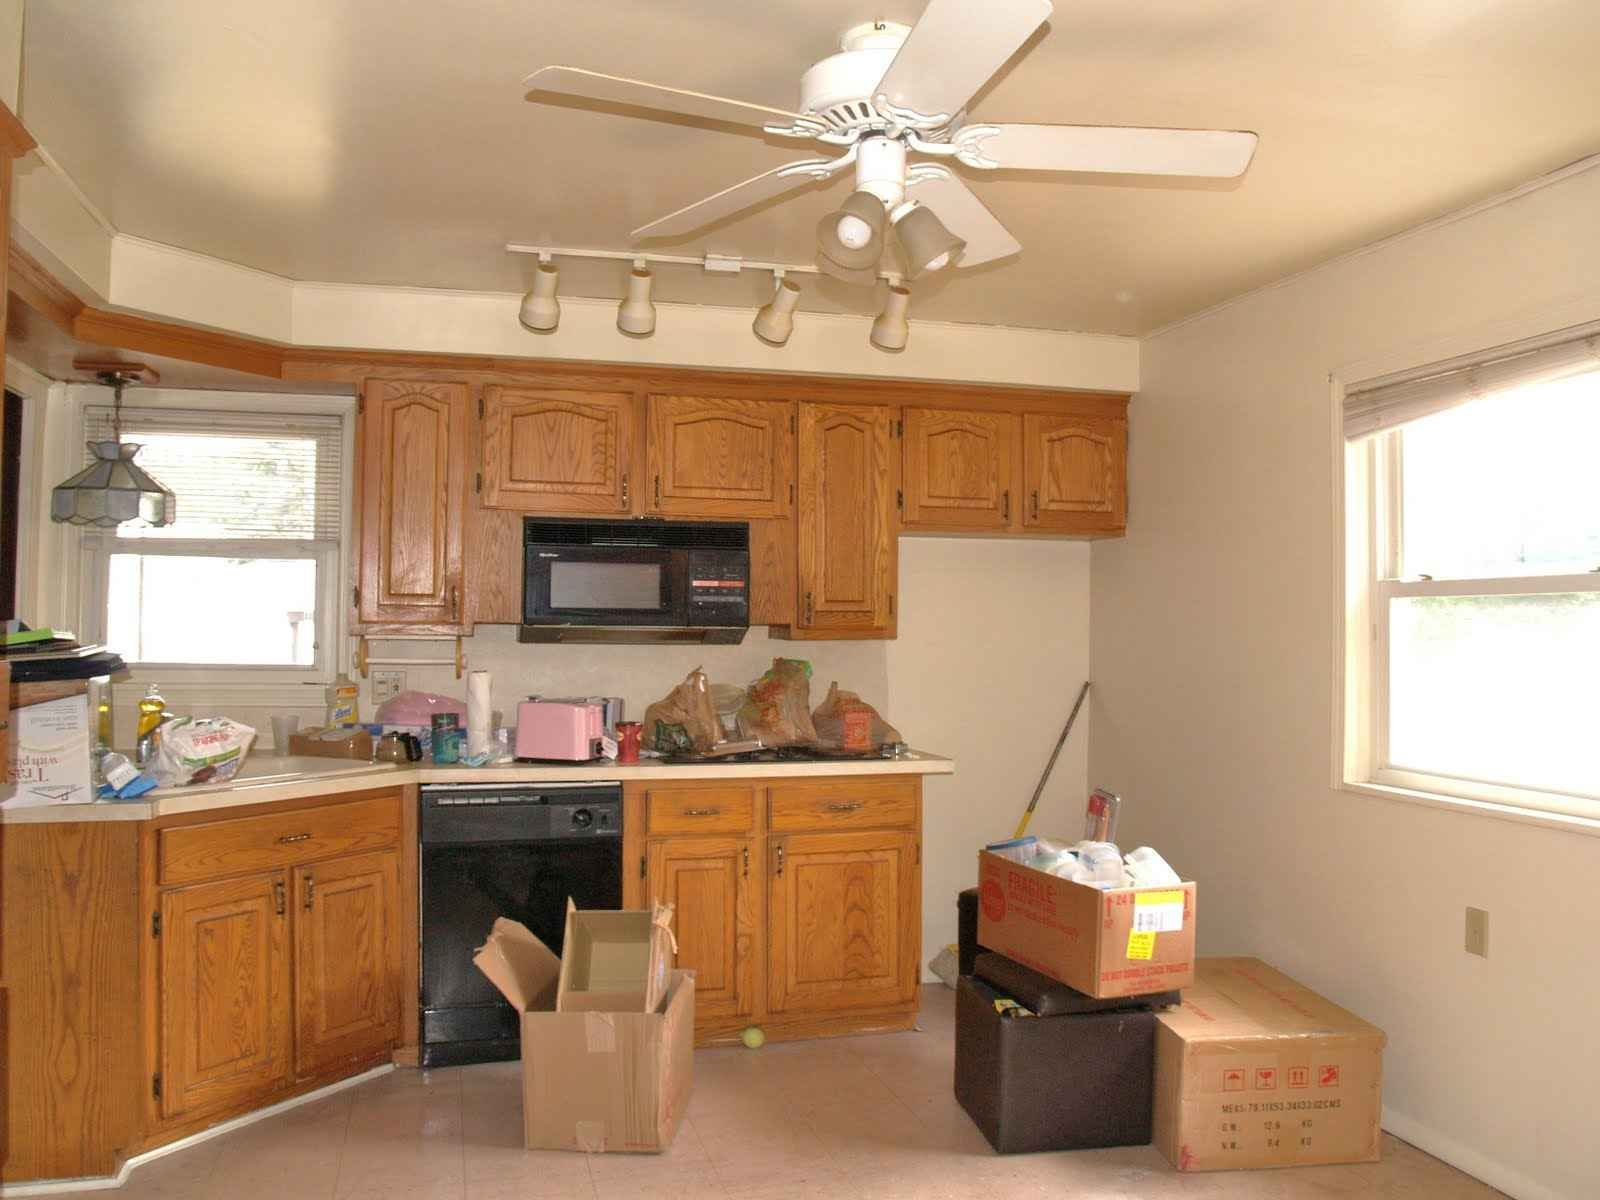 Kitchen Ceiling Fans Amazing Of Ceiling Fan For Kitchen With Lights About Home Renovation Plan Yzjhnma